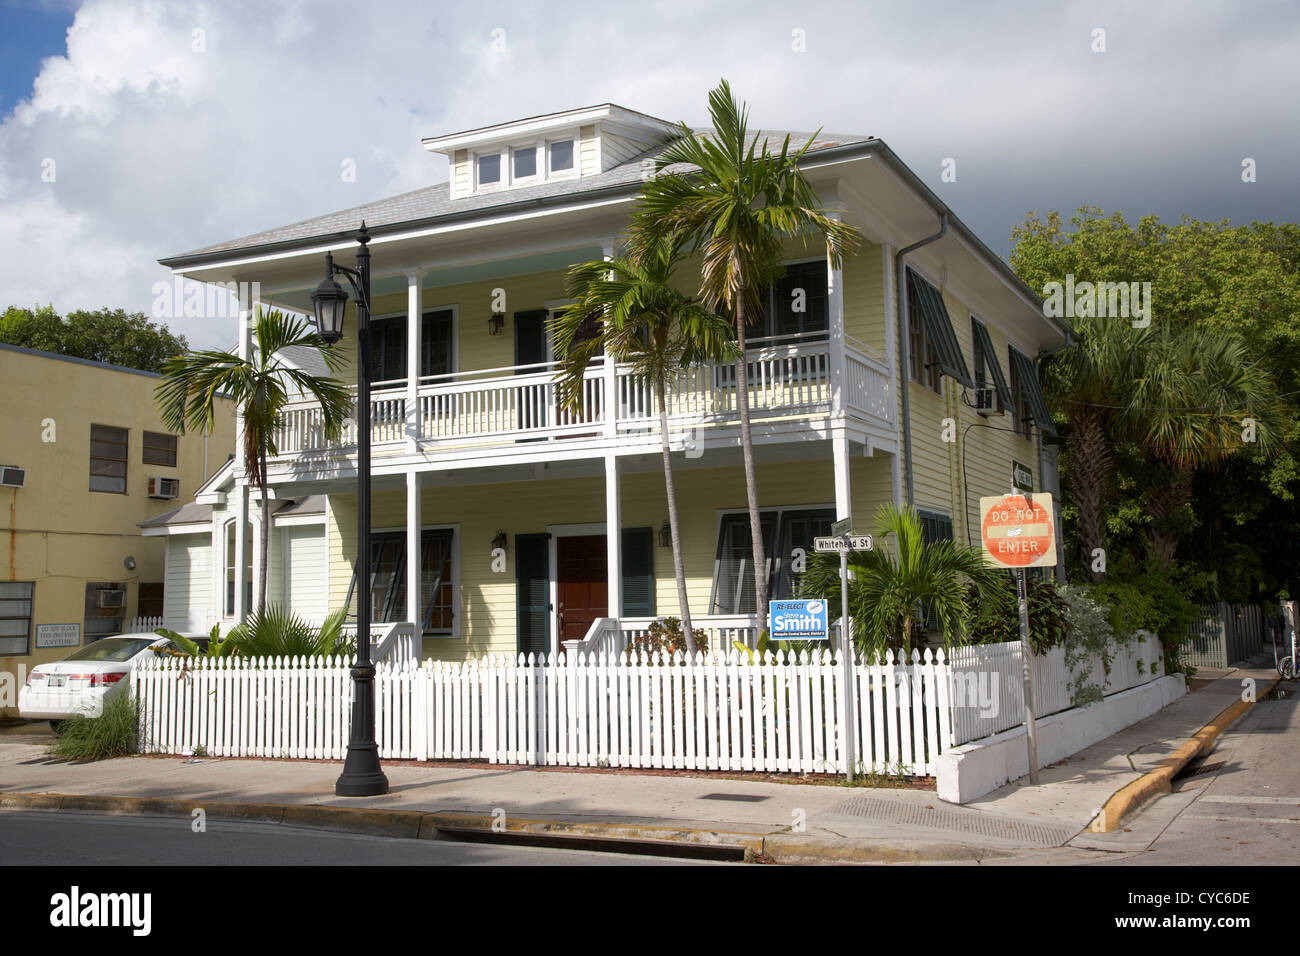 old historic wooden two storey building with white picket fence key west florida usa - Stock Image